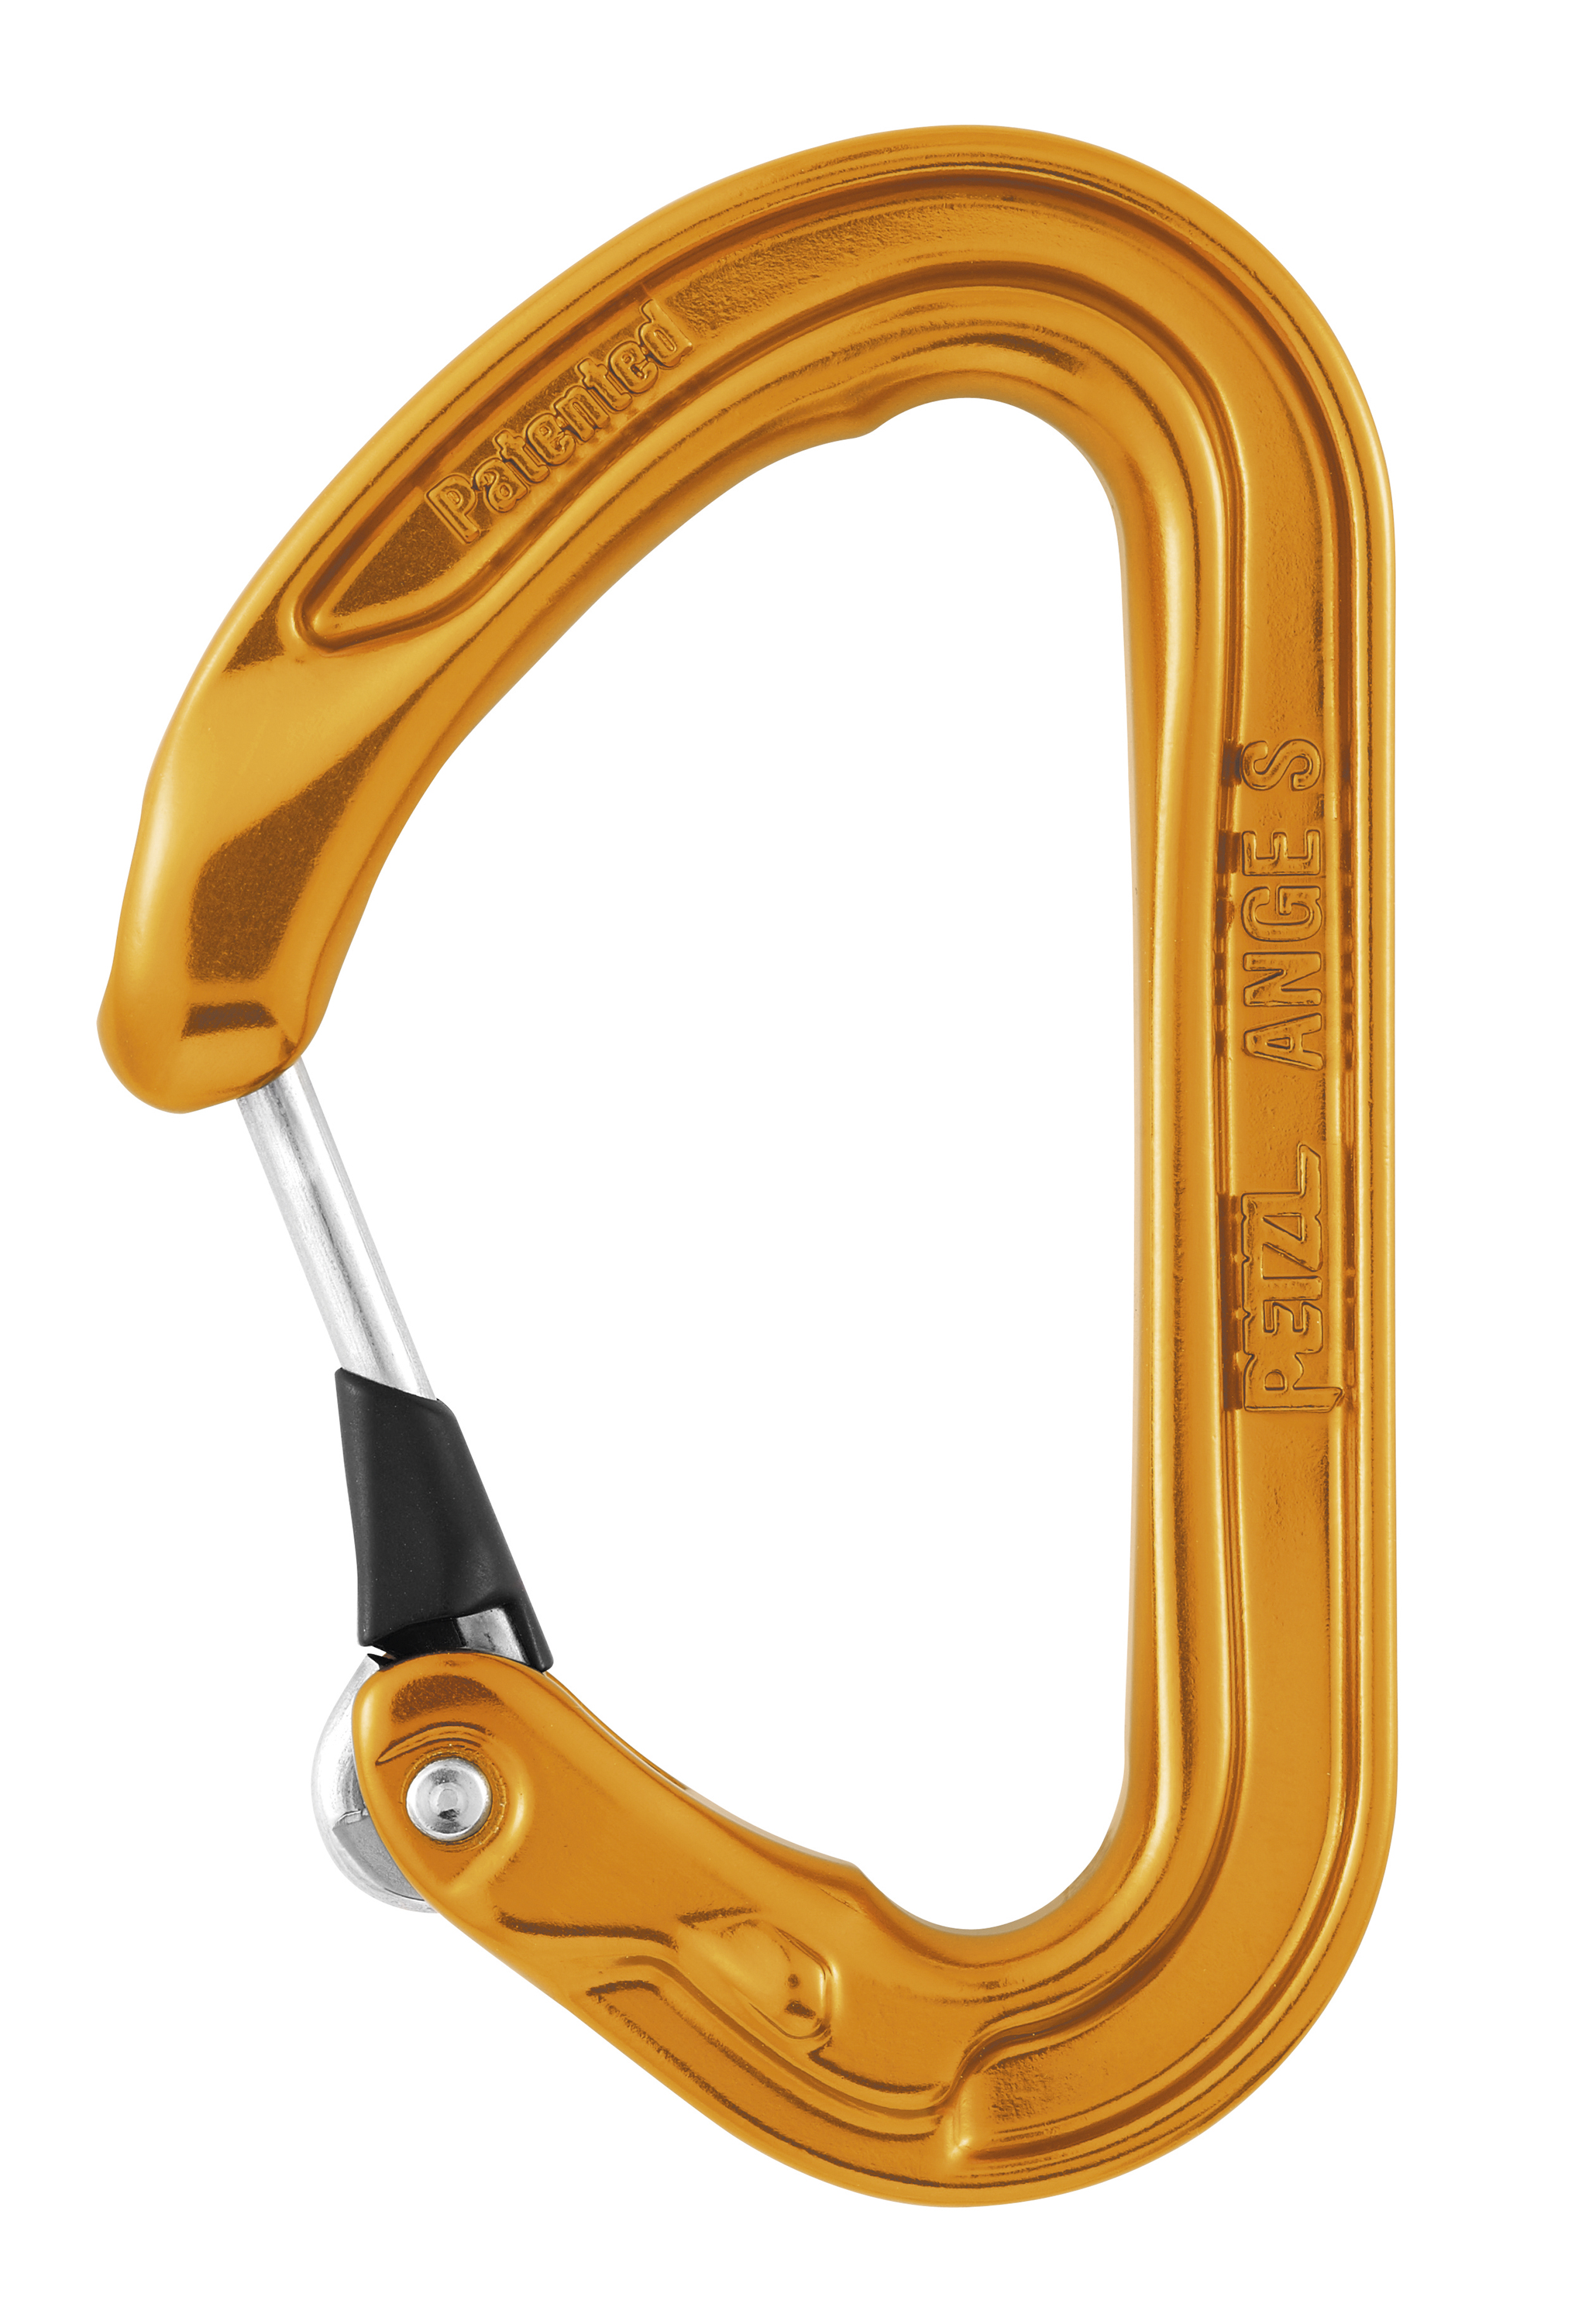 ANGE S - ORANGE - PETZL